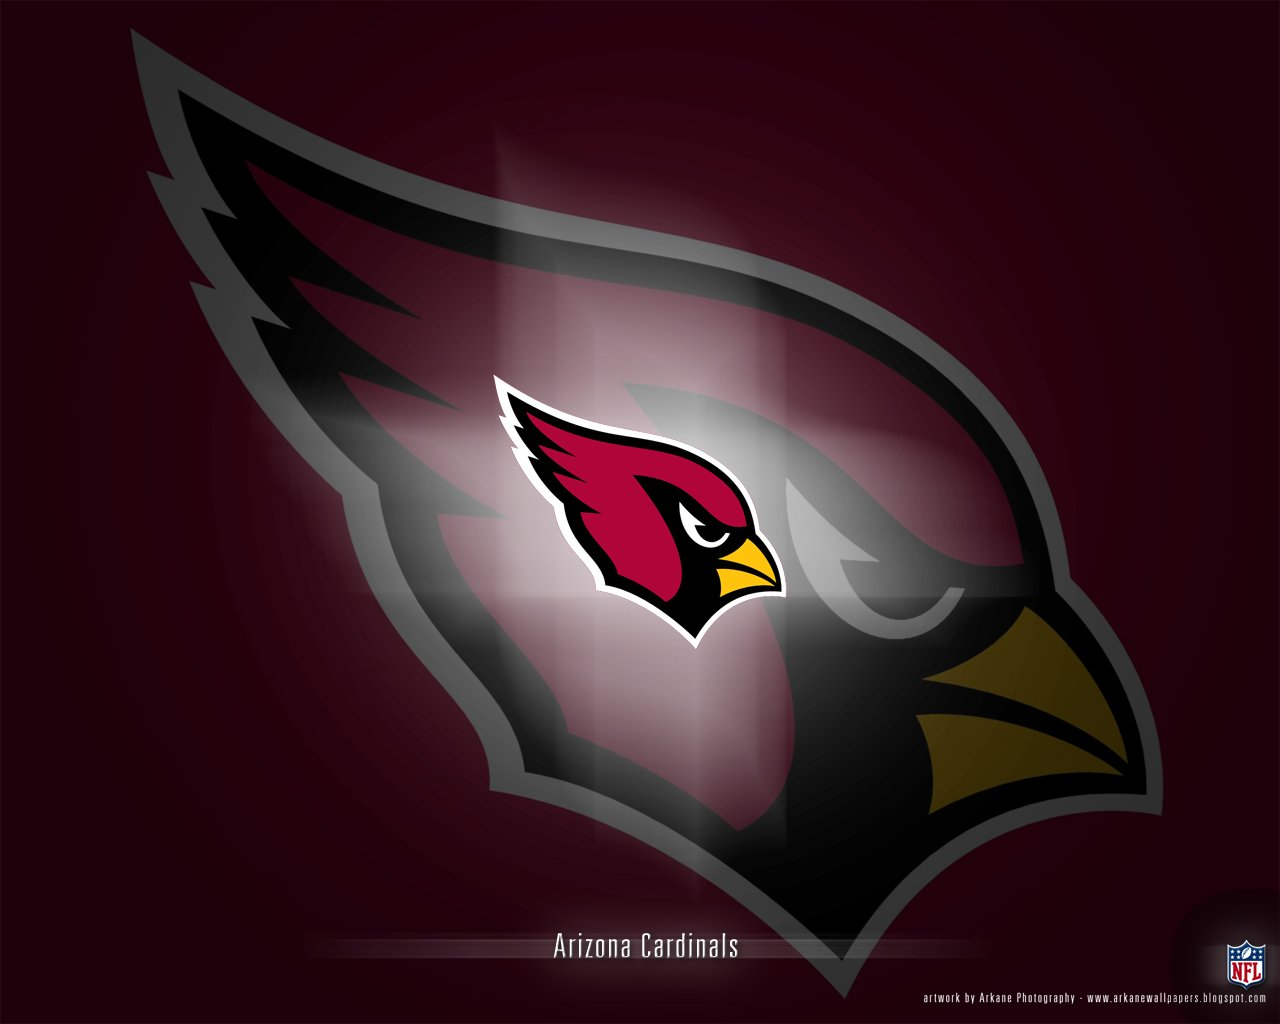 Cool arizona cardinals wallpaper wallpapersafari - Arizona cardinals screensaver free ...